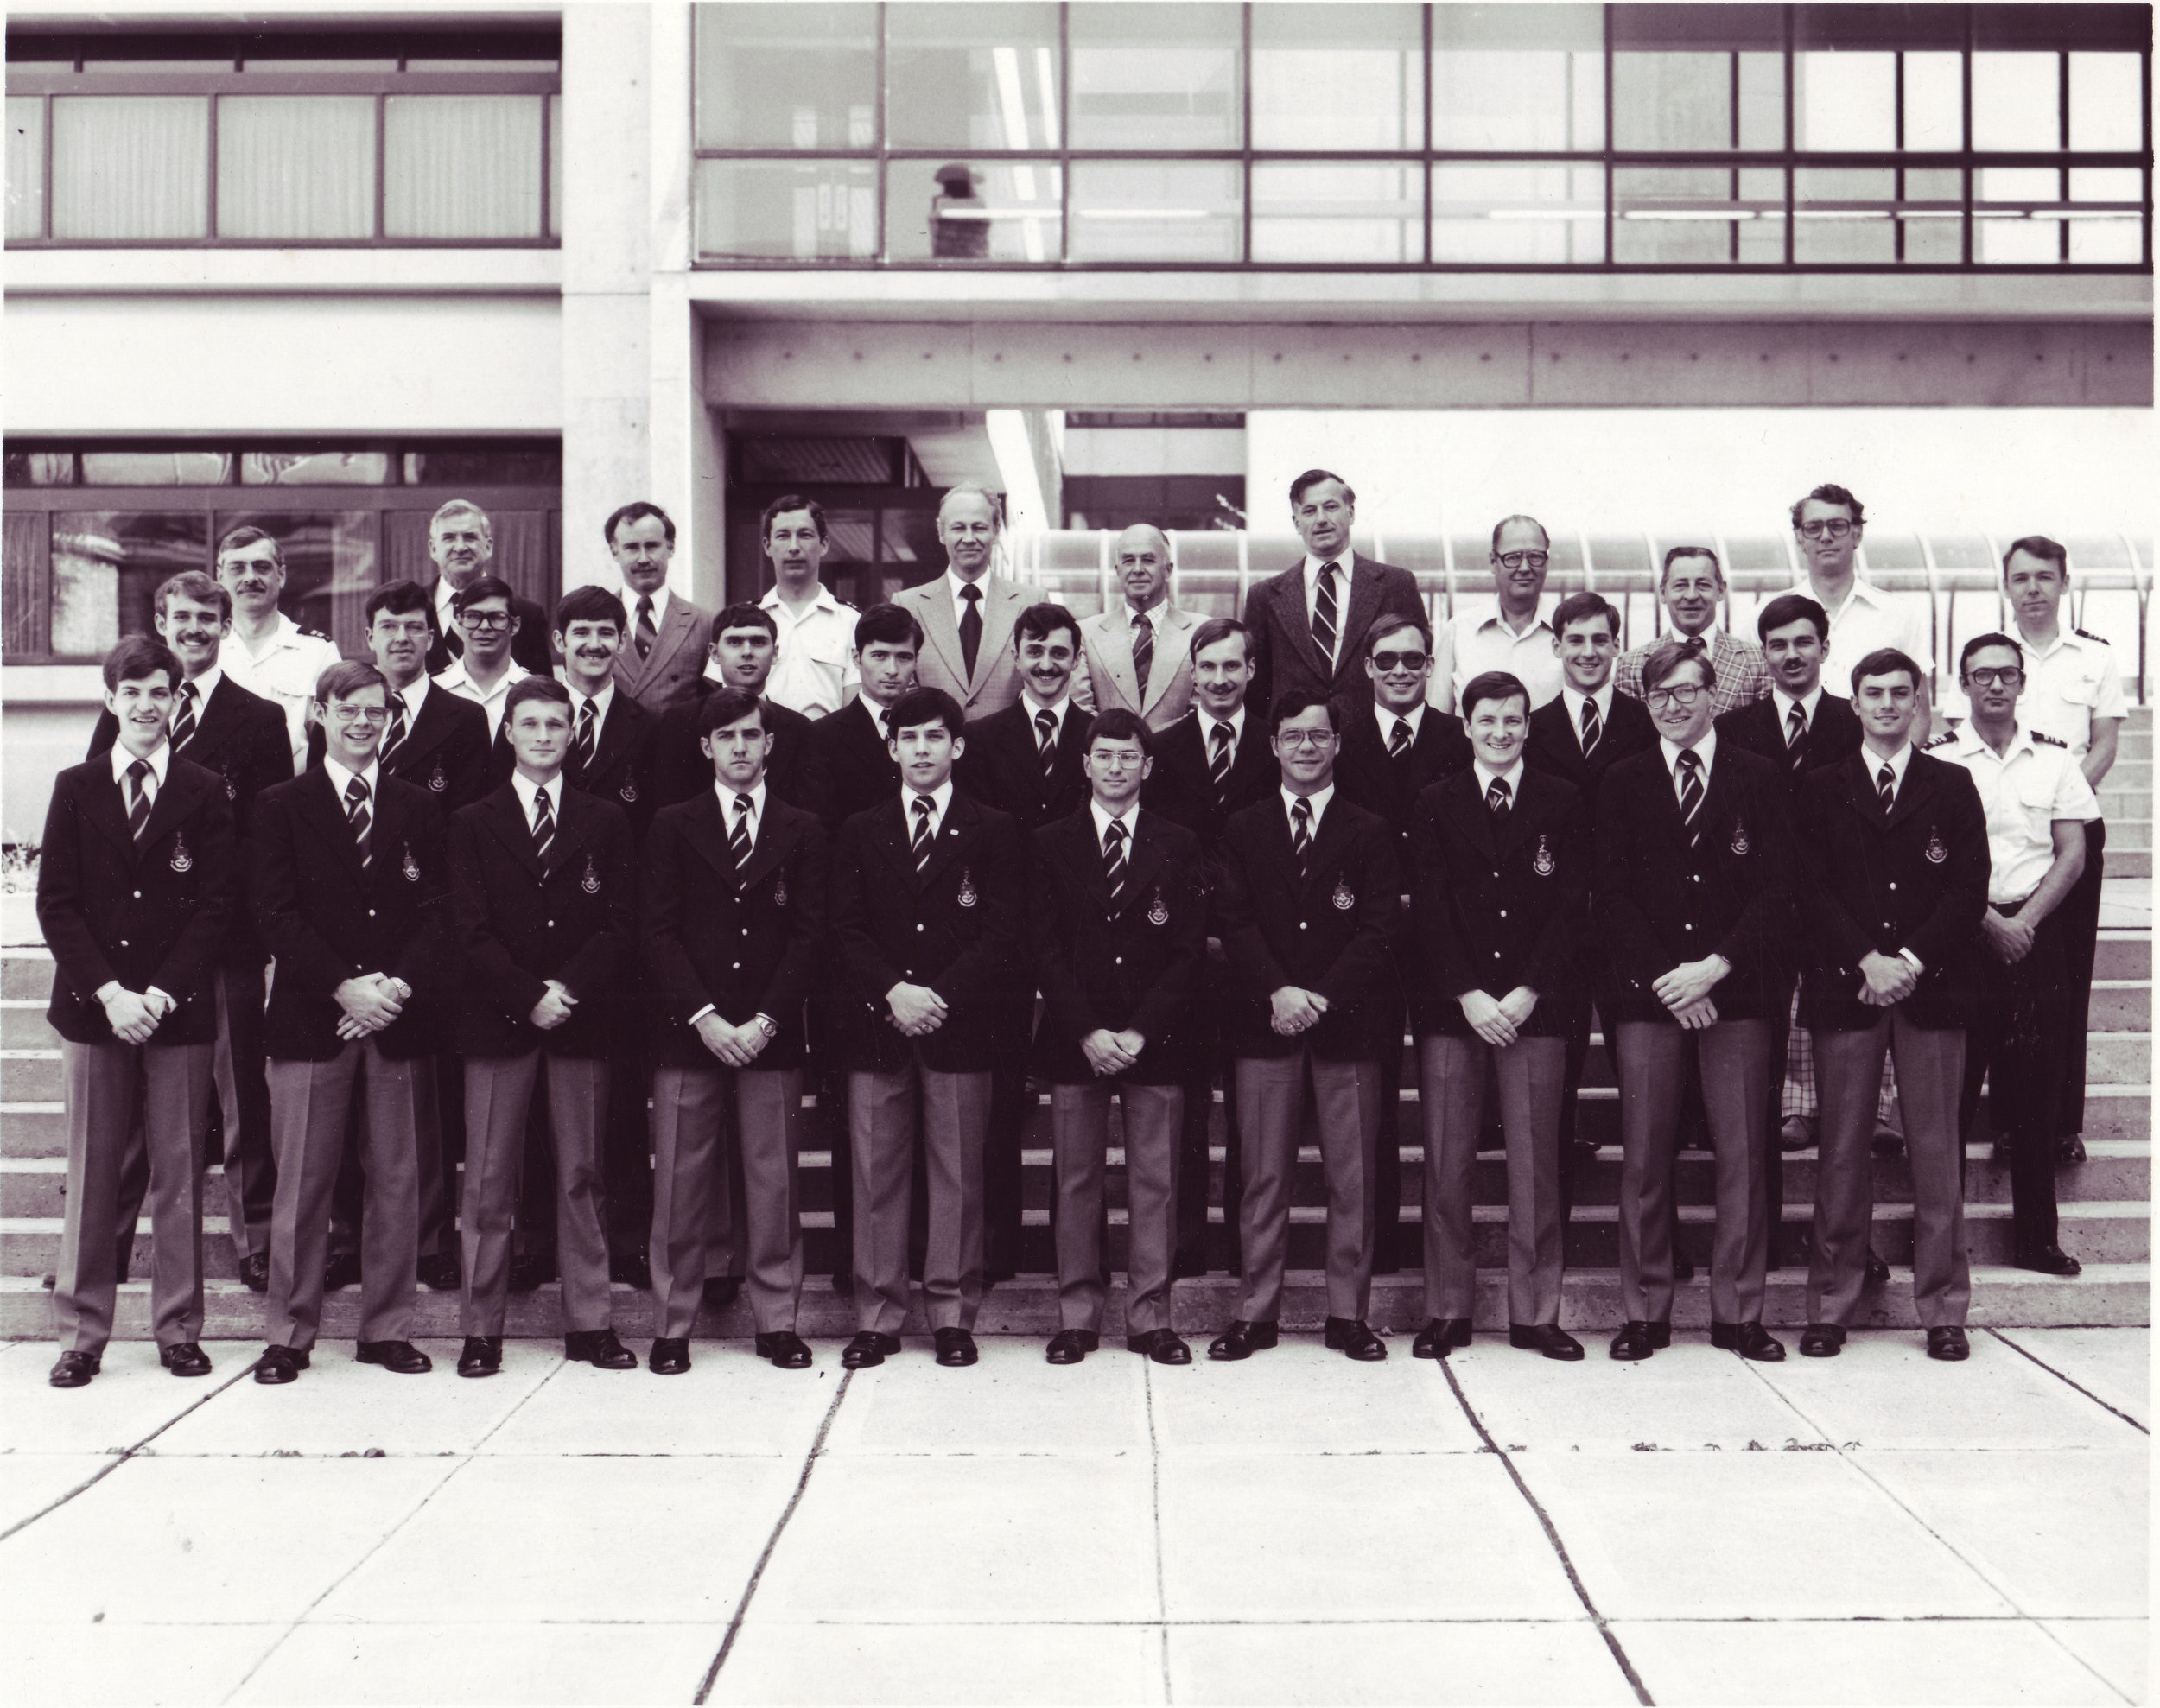 rj was extremely proud to be an engineer. here he is, in the middle row second from the left, posing along with his fellow mech eng students and professors at rmc in 1979. later he would earn his masters degree in mechanical engineering from rmc as well.